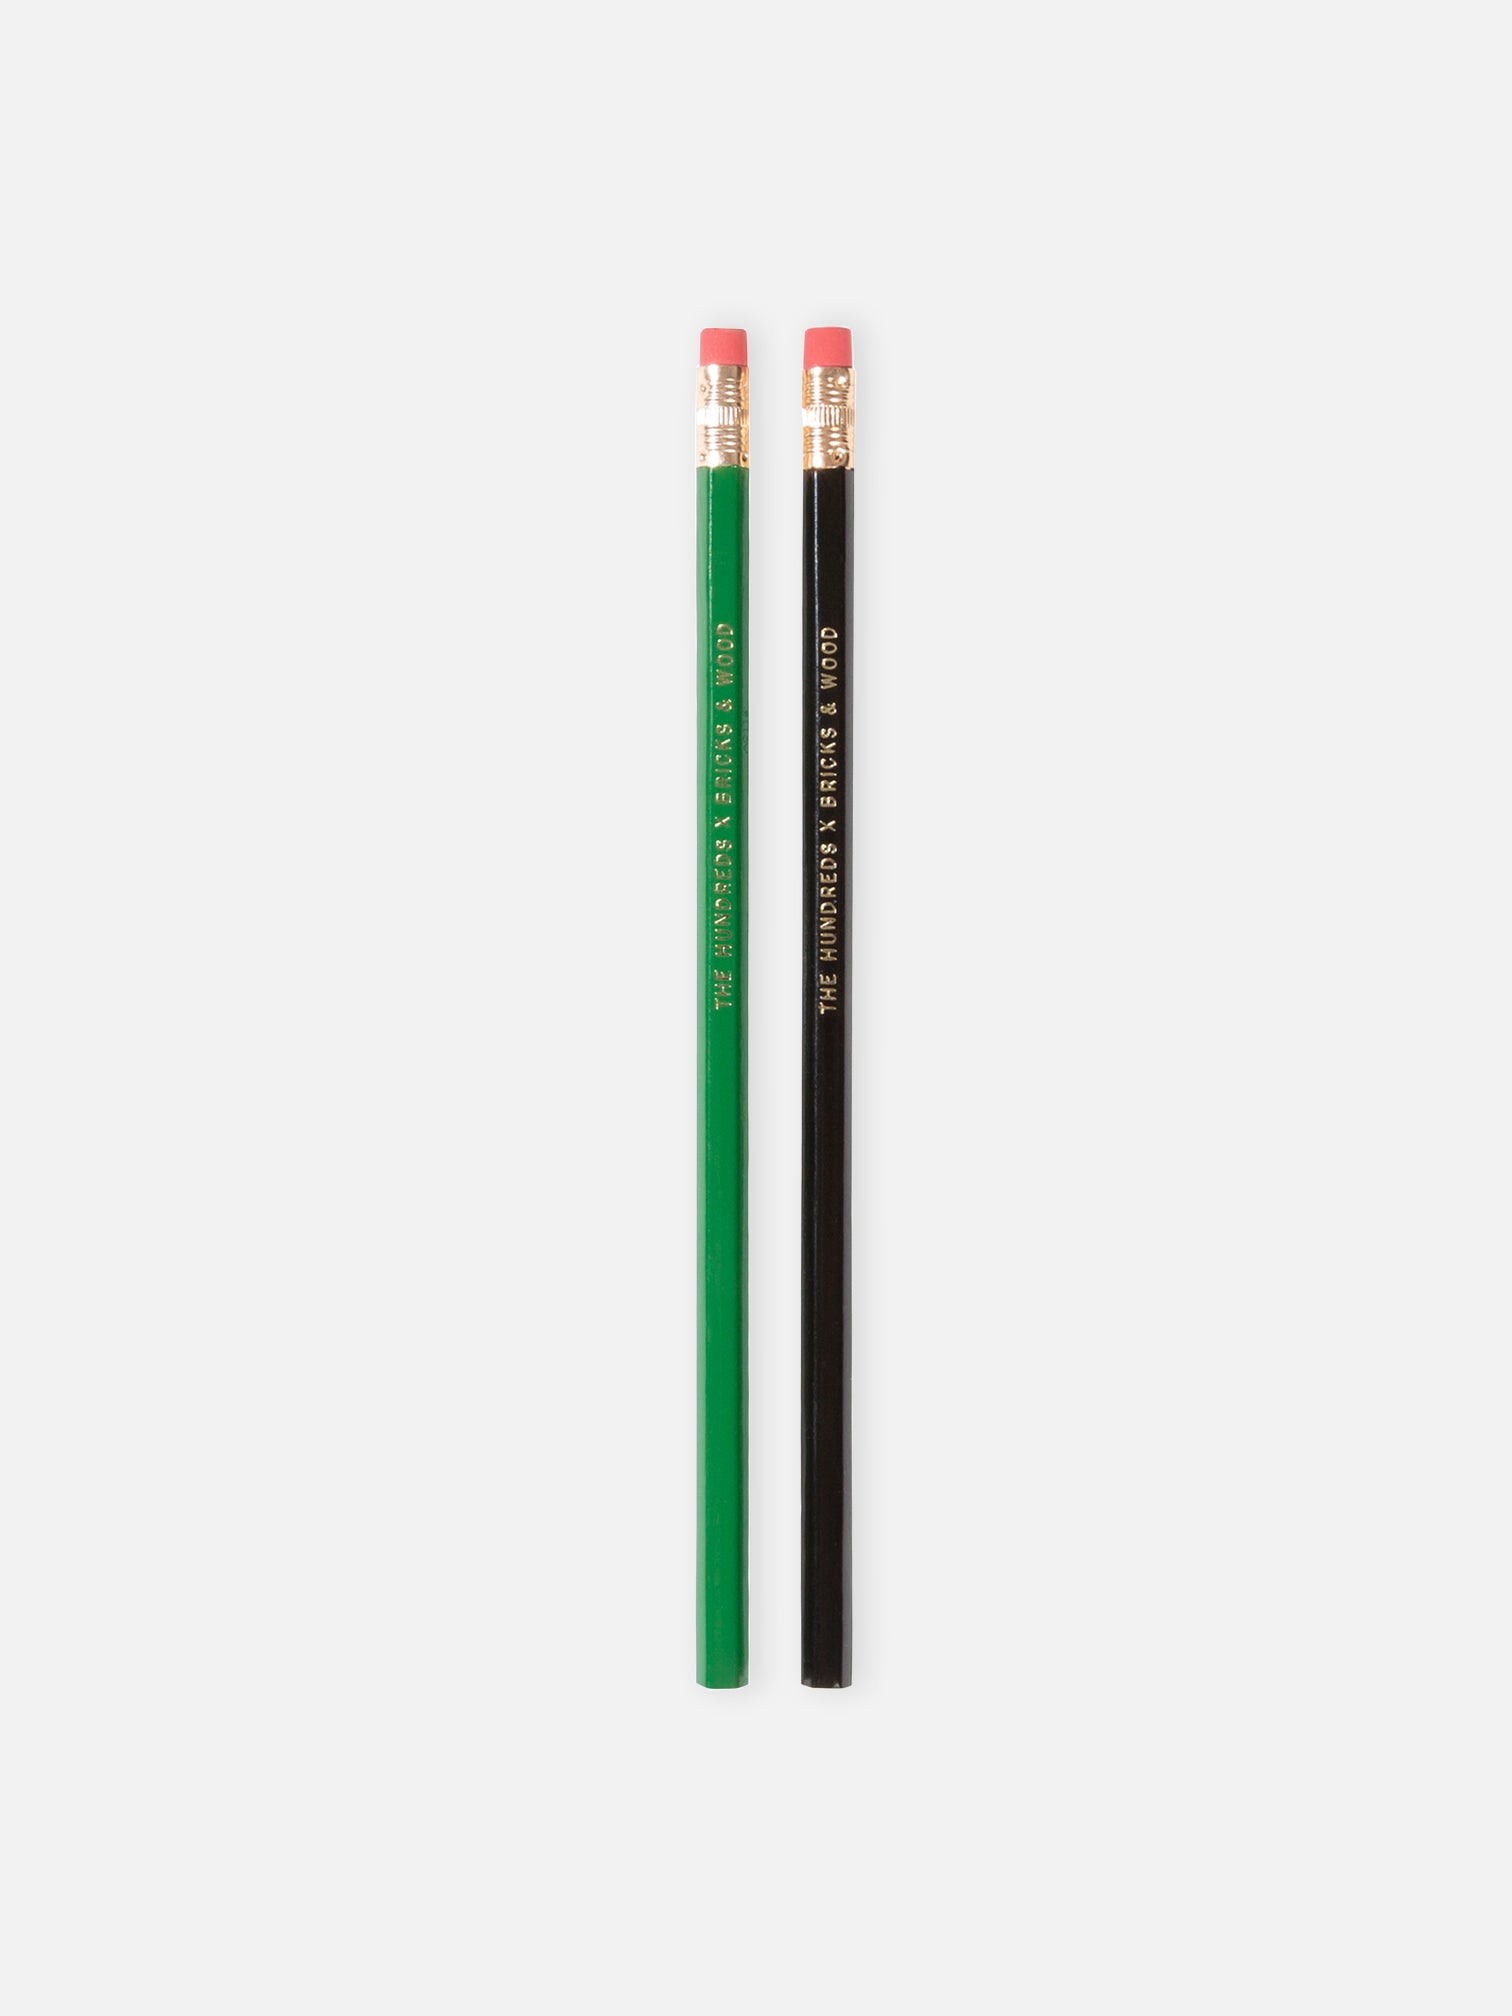 #2 Hex Cedar Wood Pencils